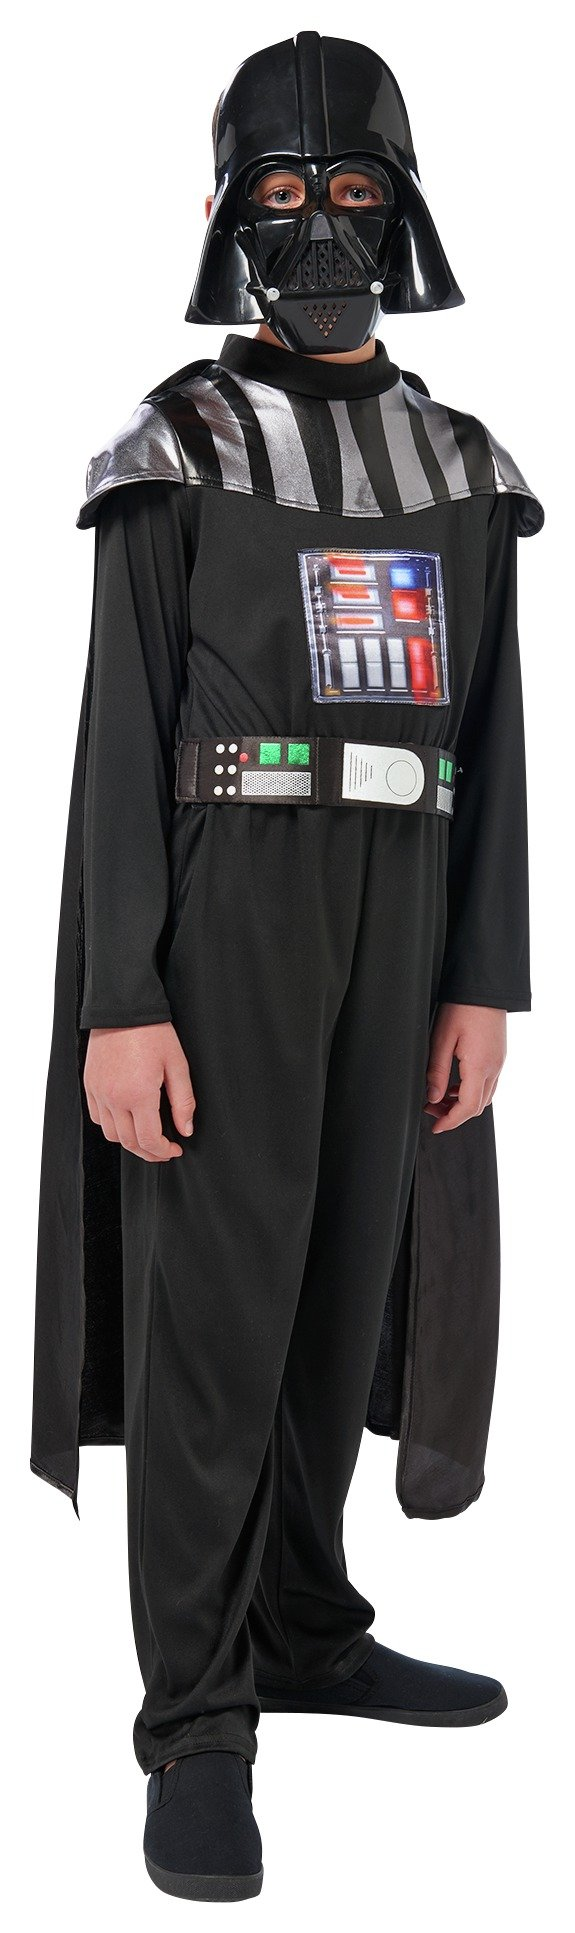 Star Wars Children's Darth Vader Fancy Dress - 5-6 Years